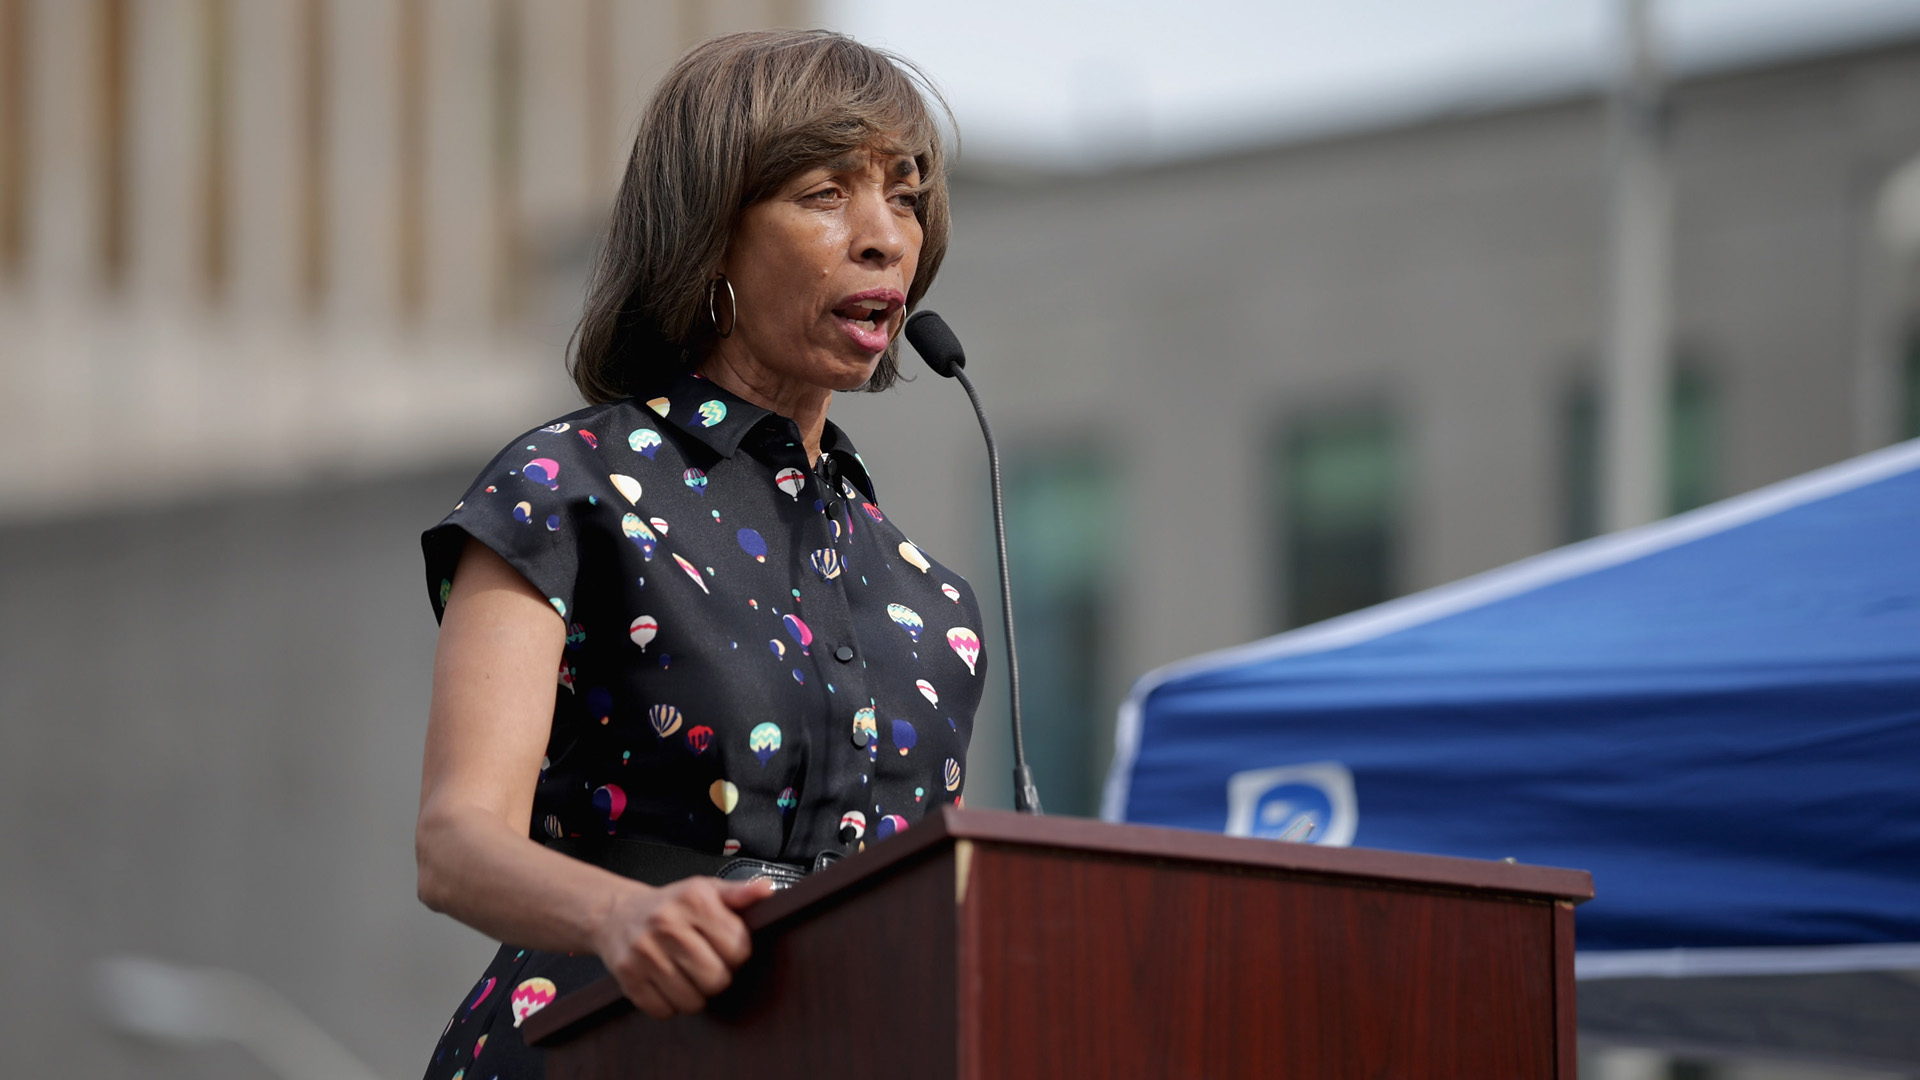 Baltimore mayor Catherine Pugh addresses a rally on April 25, 2016 in Baltimore, Maryland. (Credit: Chip Somodevilla/Getty Images)